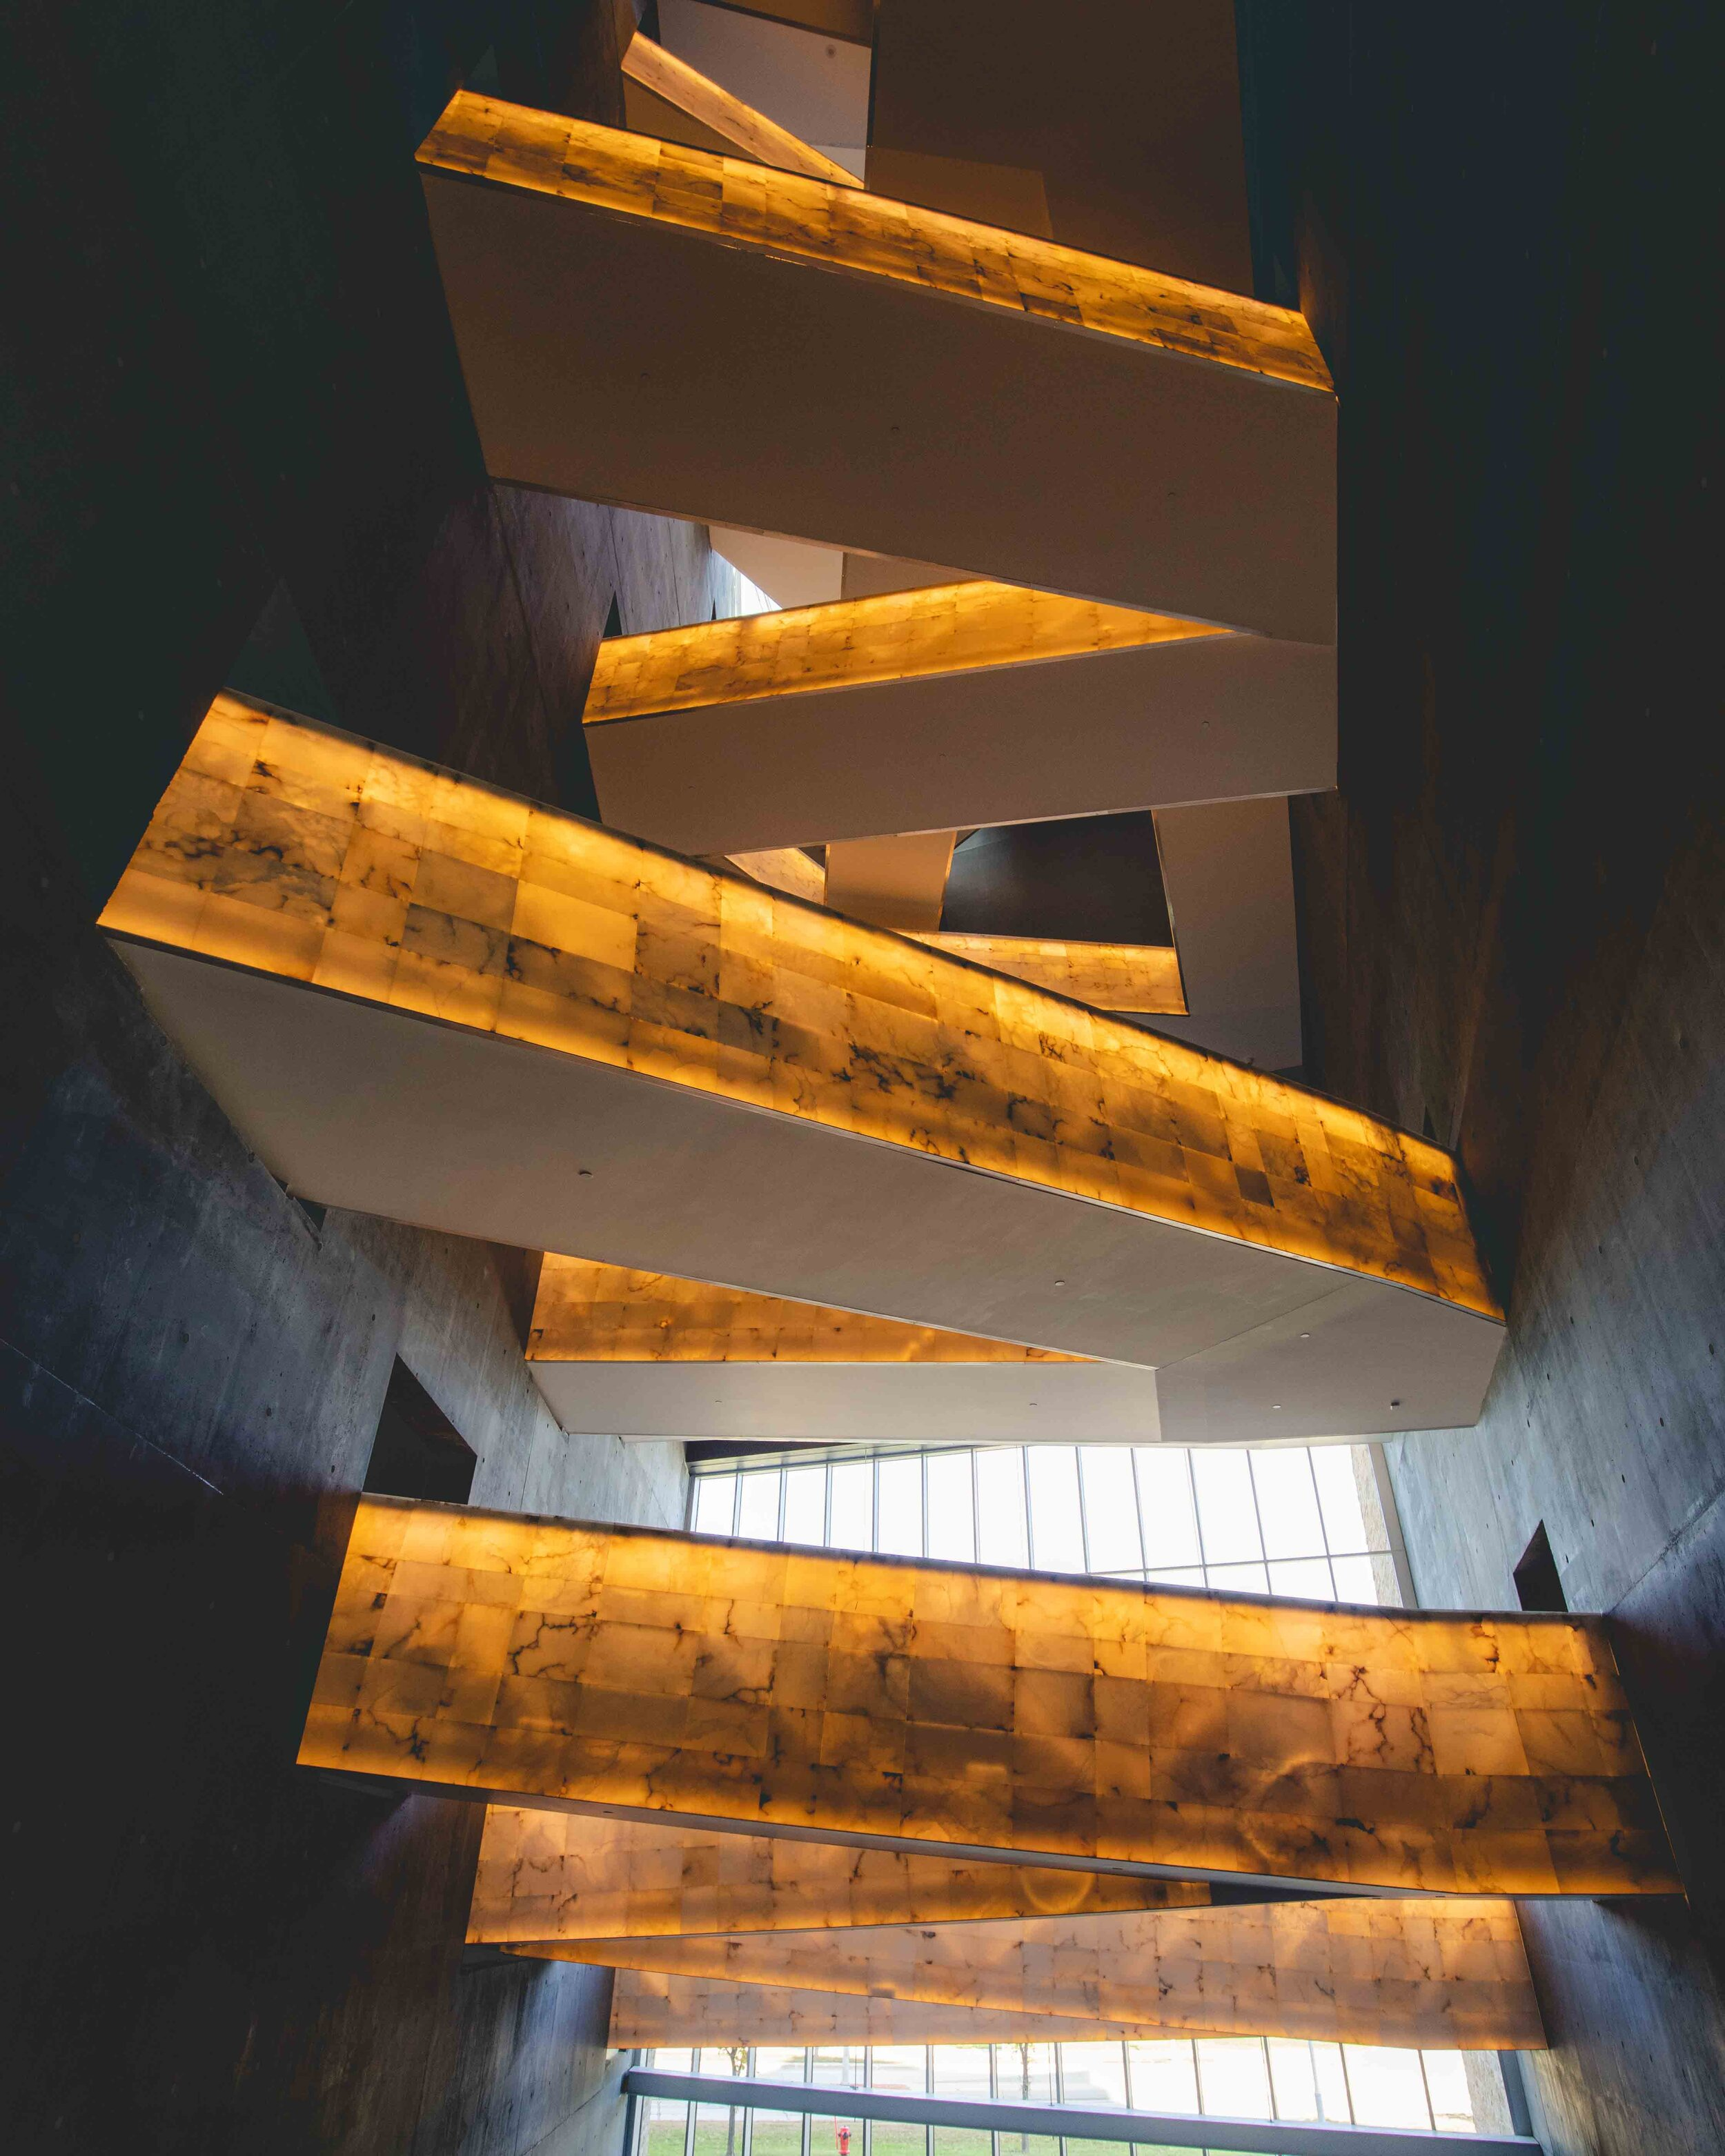 The stairs at the museum of human rights - winnipeg